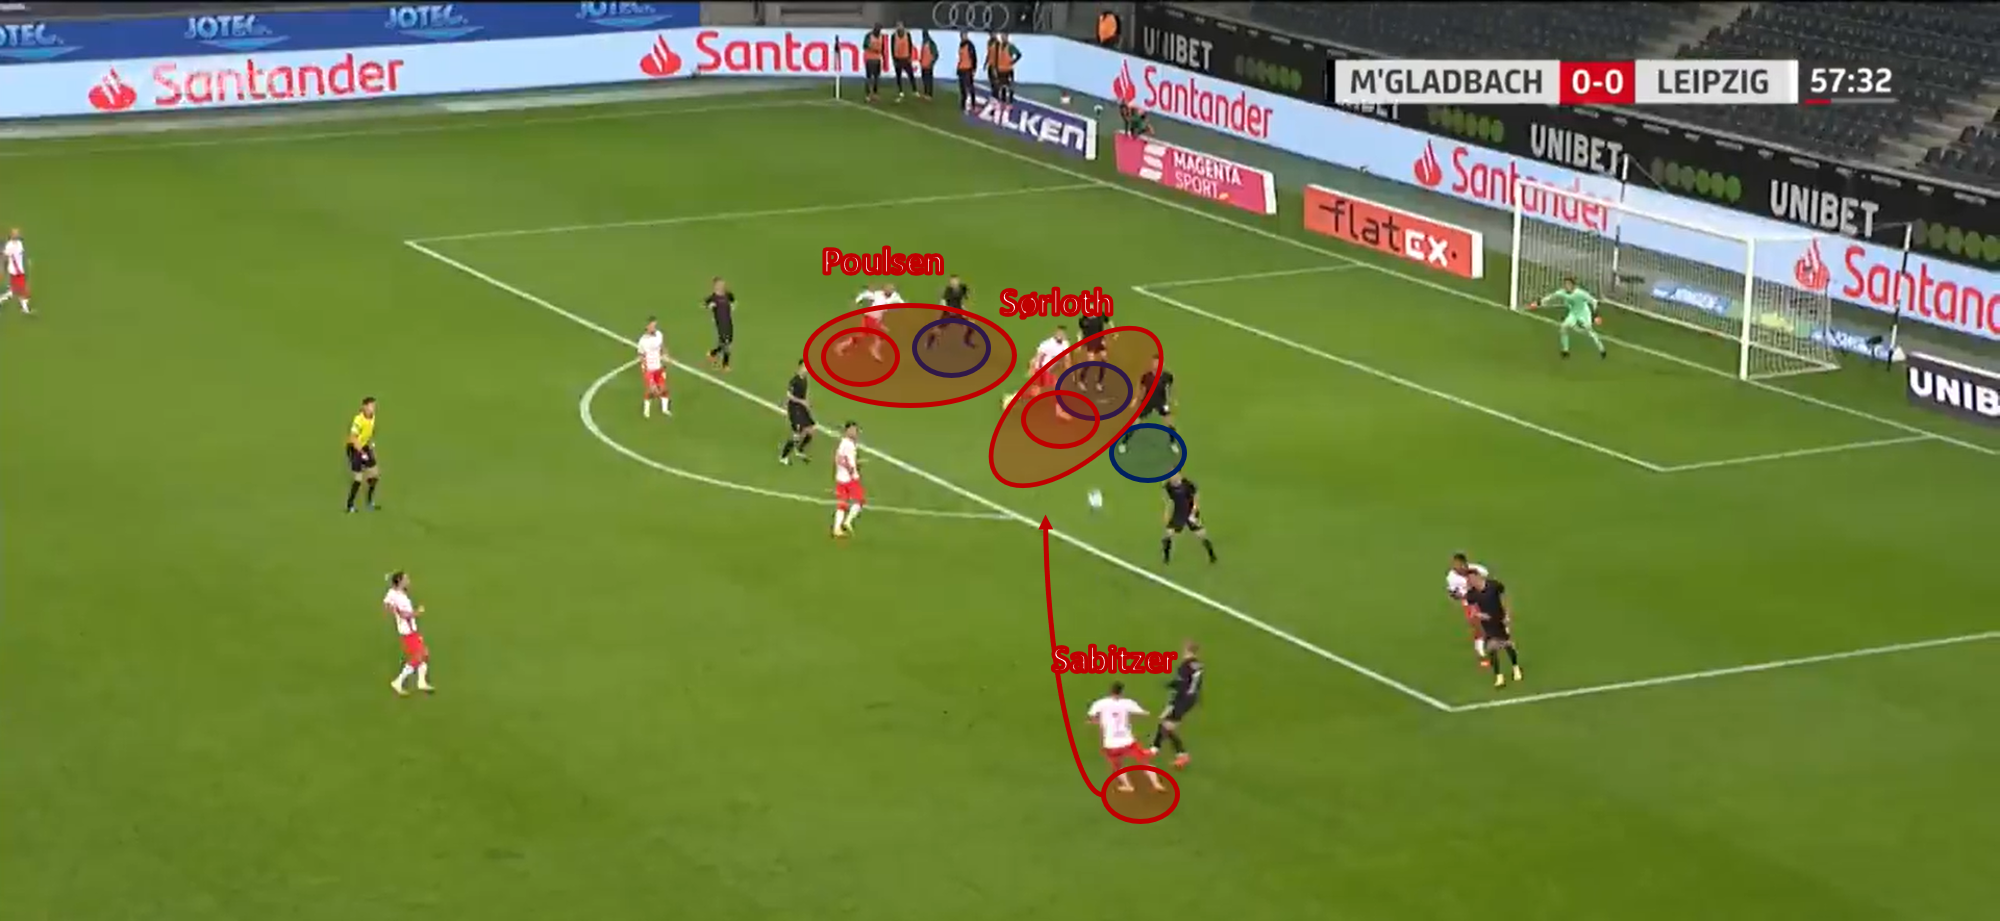 Bundesliga 2020/21: Borussia Mönchengladbach vs RB Leipzig – tactical analysis - tactics